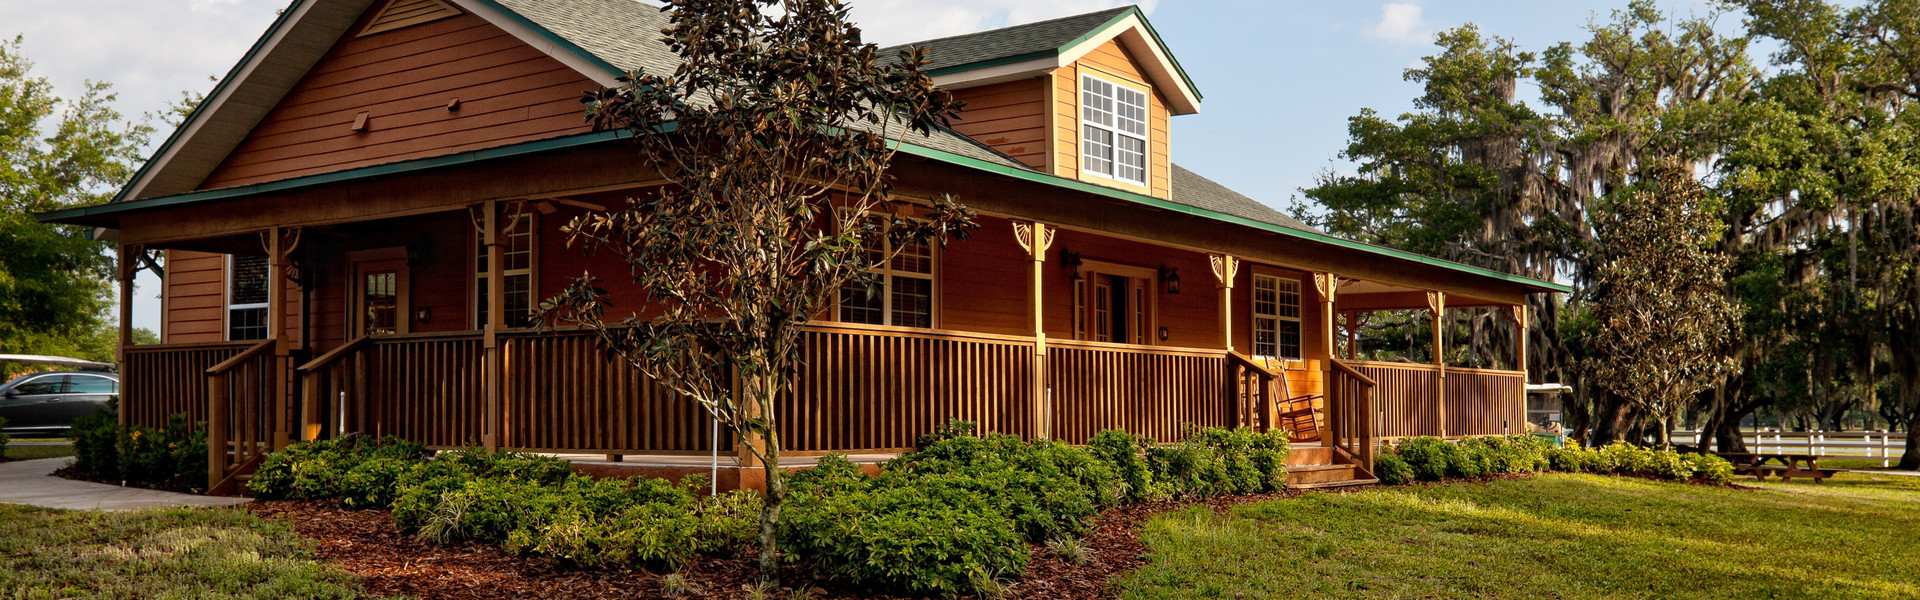 An authentic Florida dude ranch nestled in one of the few untouched pieces of Florida wilderness, Westgate River Ranch Resort & Rodeo lies just one hour south of Orlando and features a variety of Florida cowboy-themed accommodations and activities.